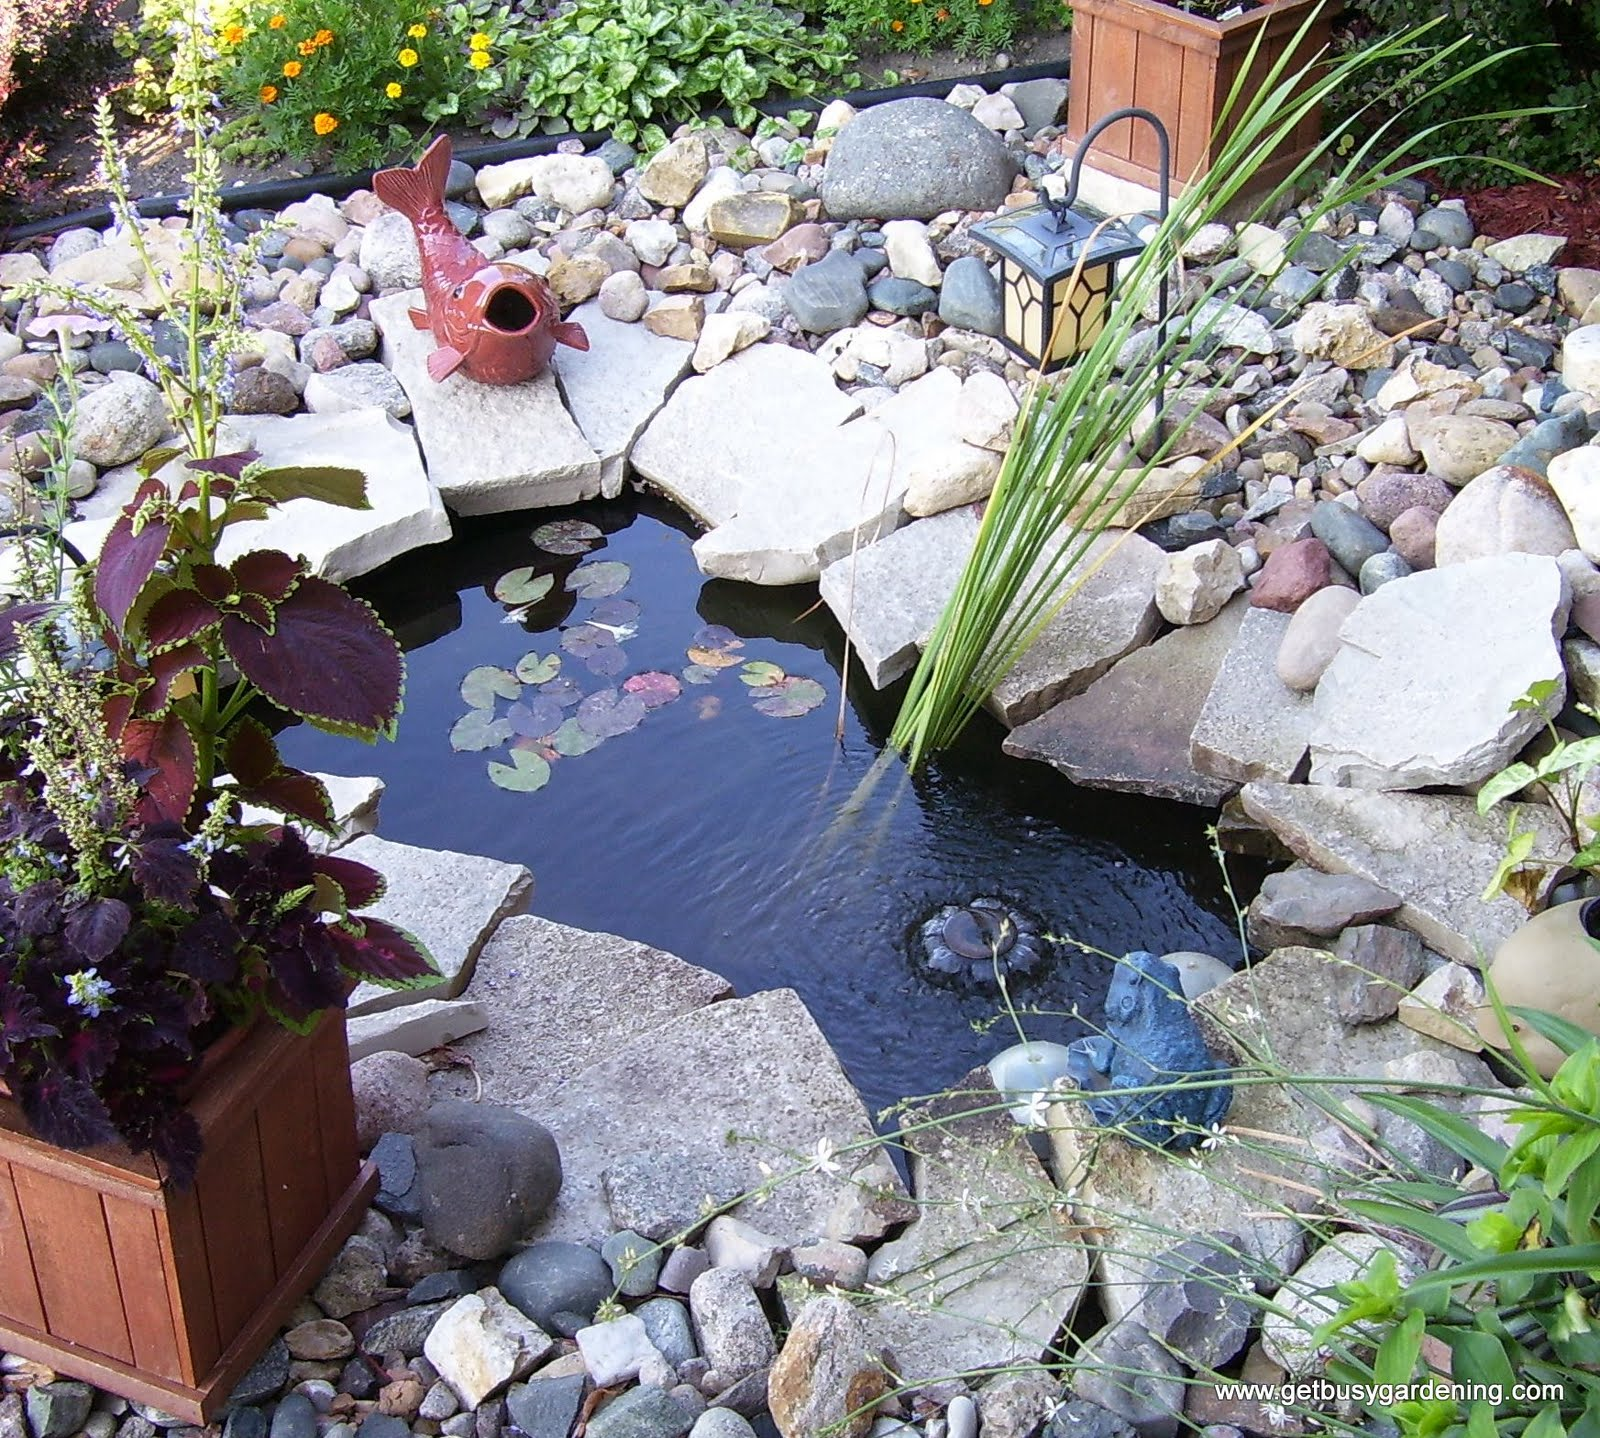 How To Empty Backyard Pond : Keeping Pond Water Clear the Natural Way